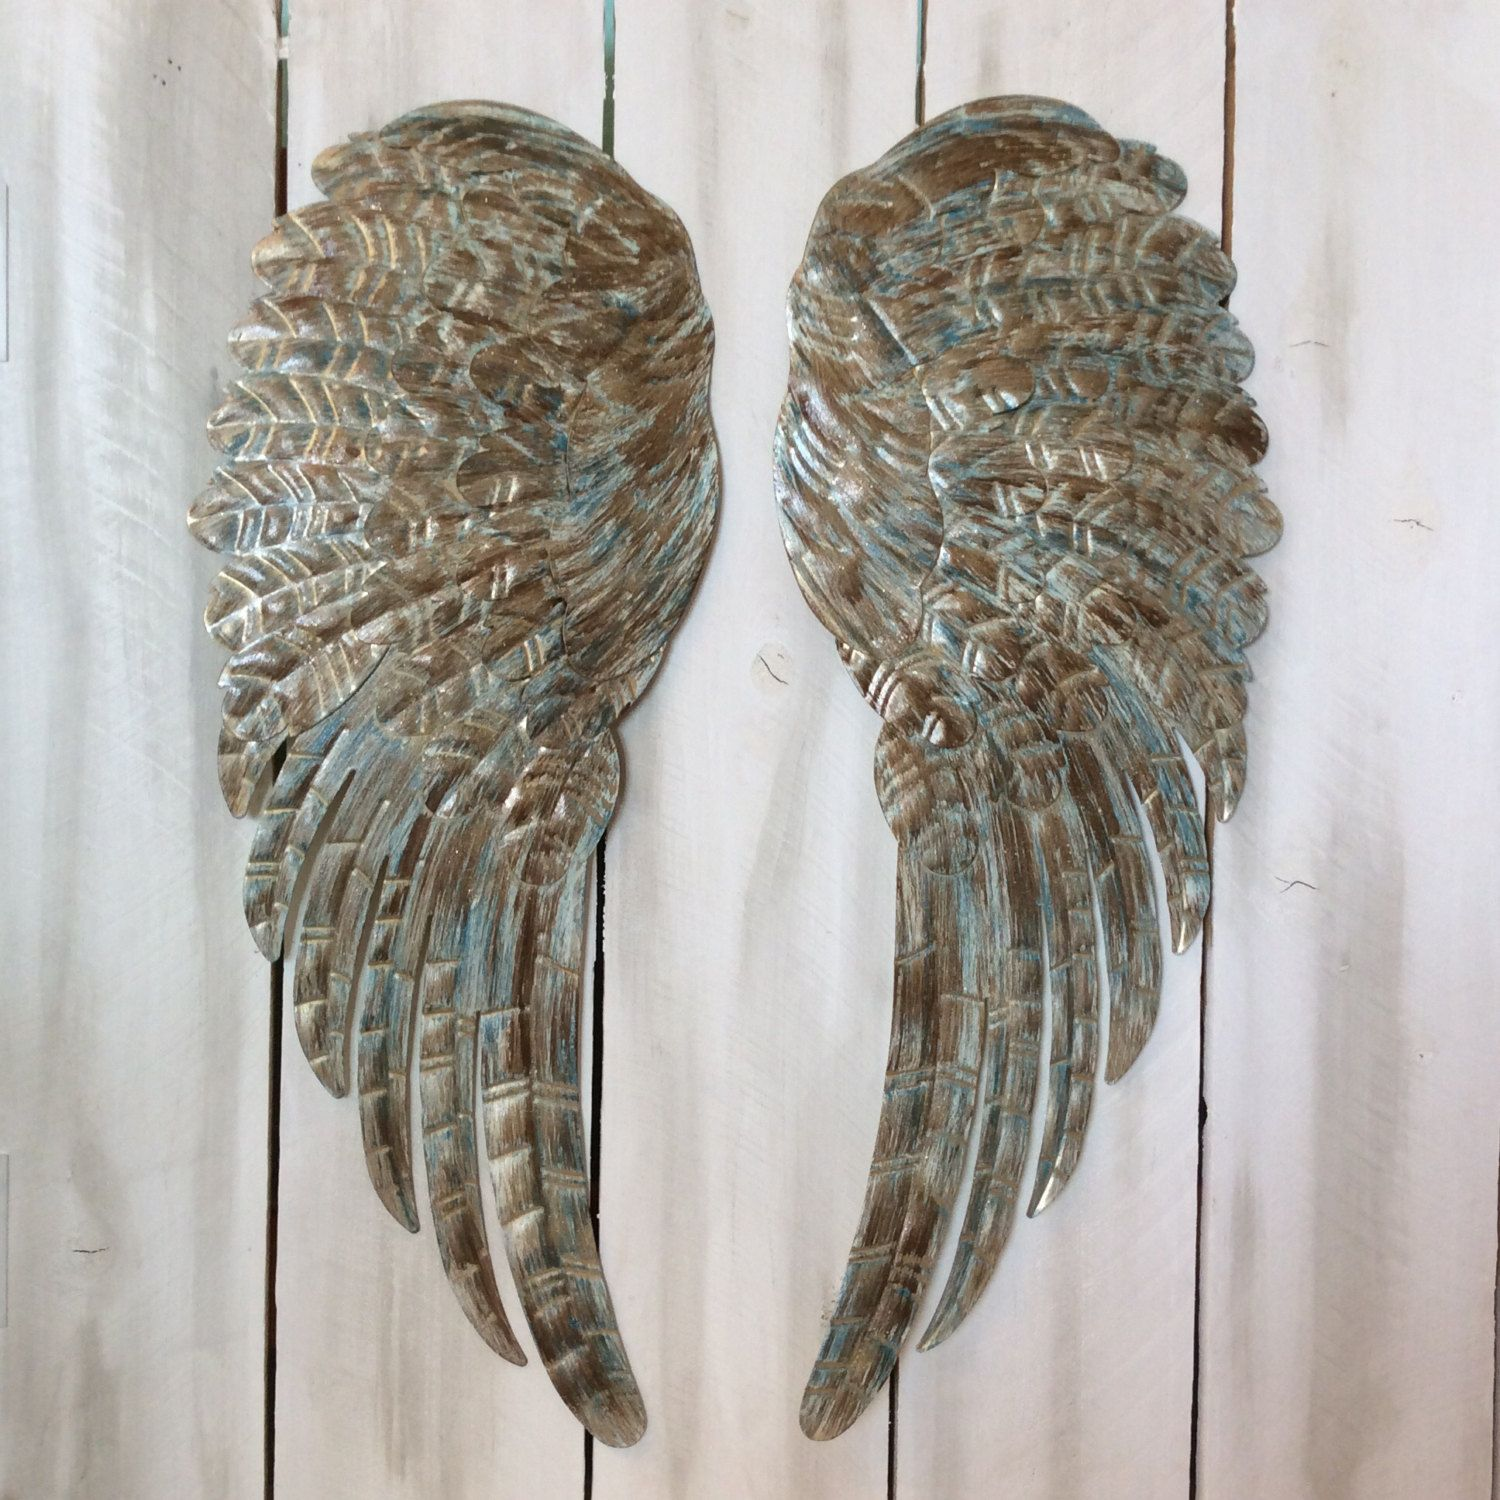 Large metal angel wings wall decor distressed turquoise ivory